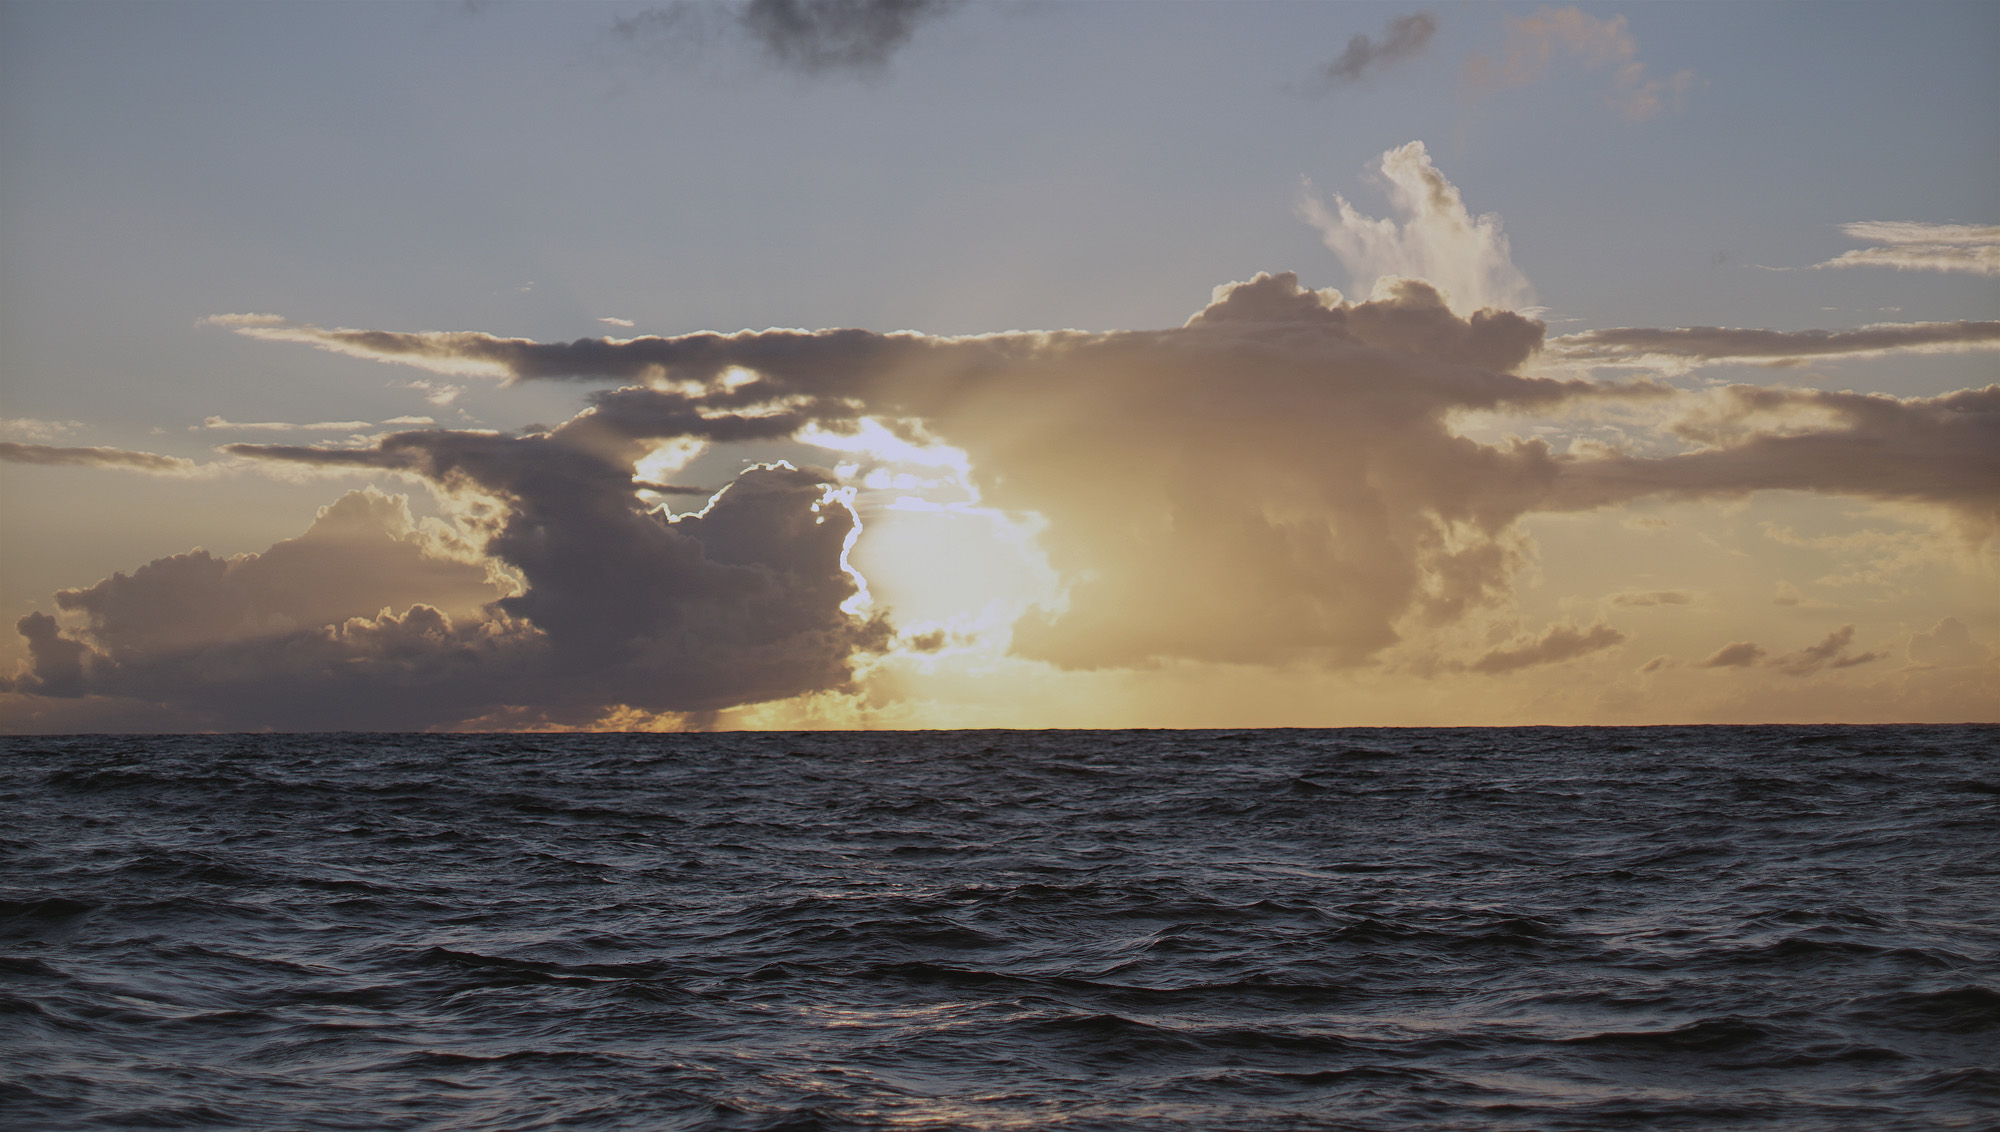 Sunrise by the Marshall Islands picture